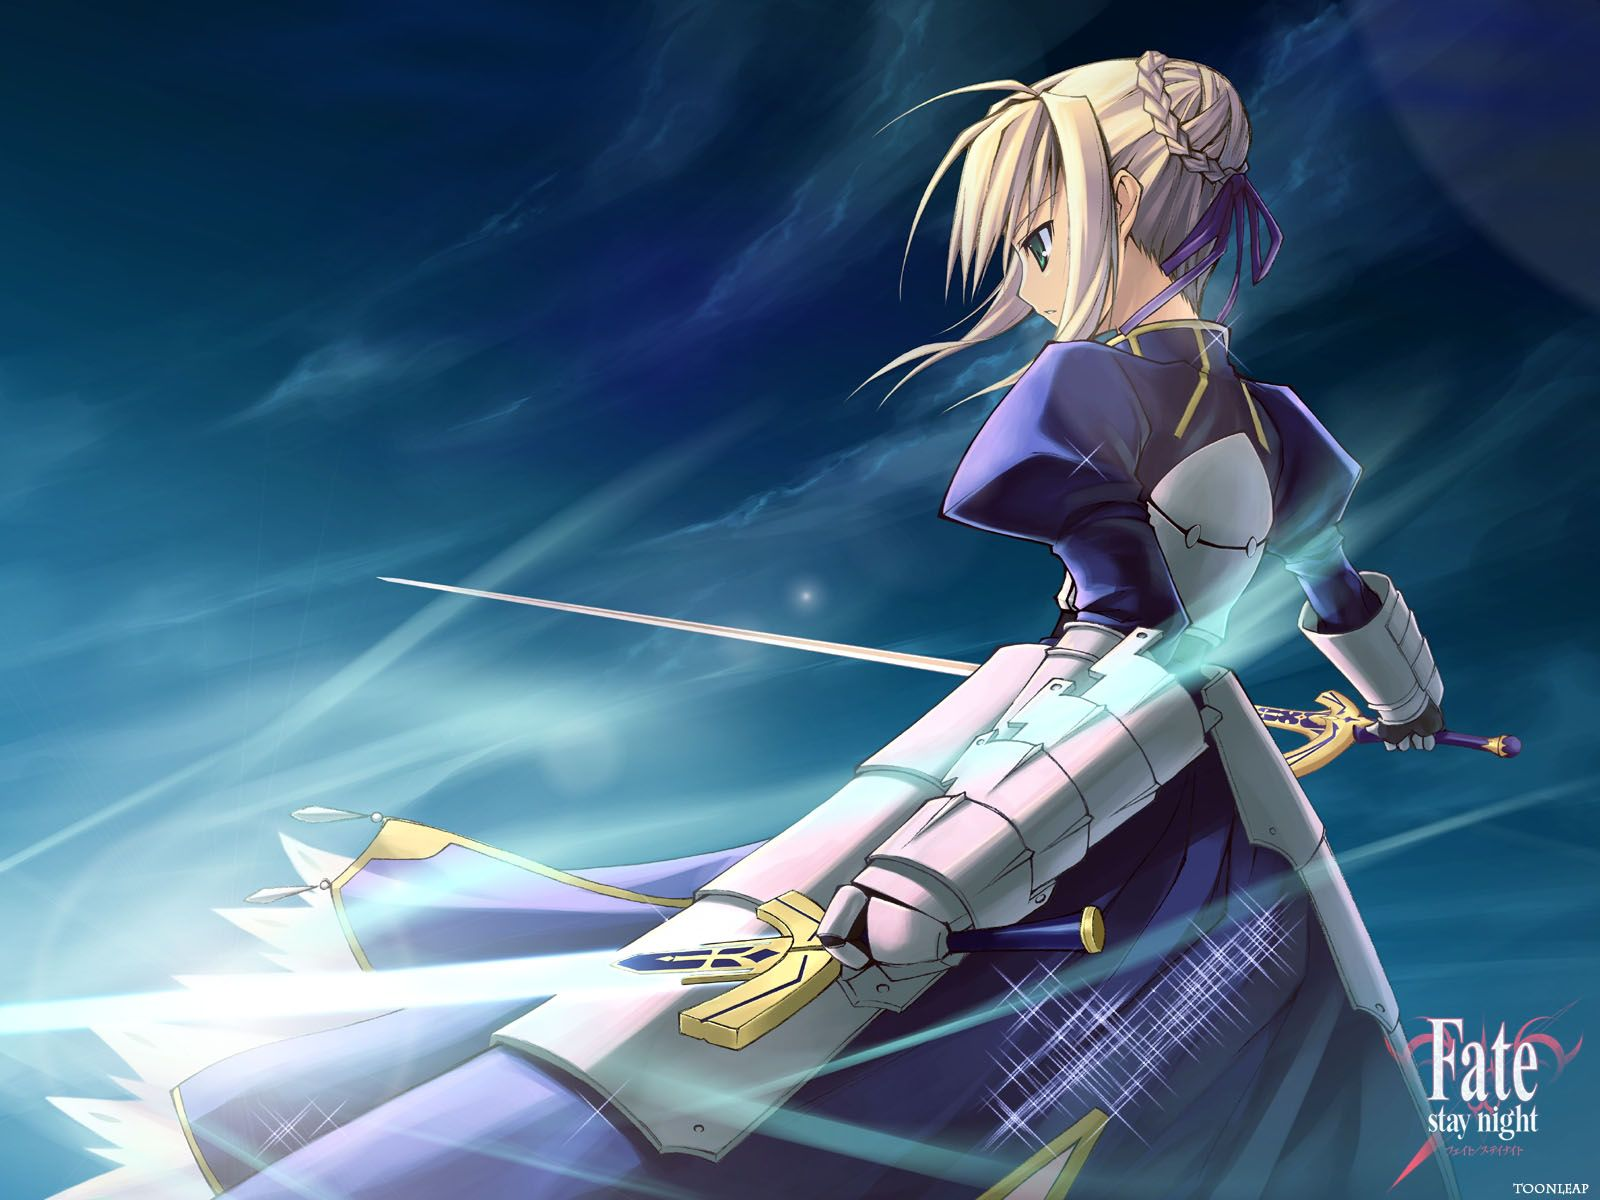 fate stay night Google Search Anime Pinterest Fate